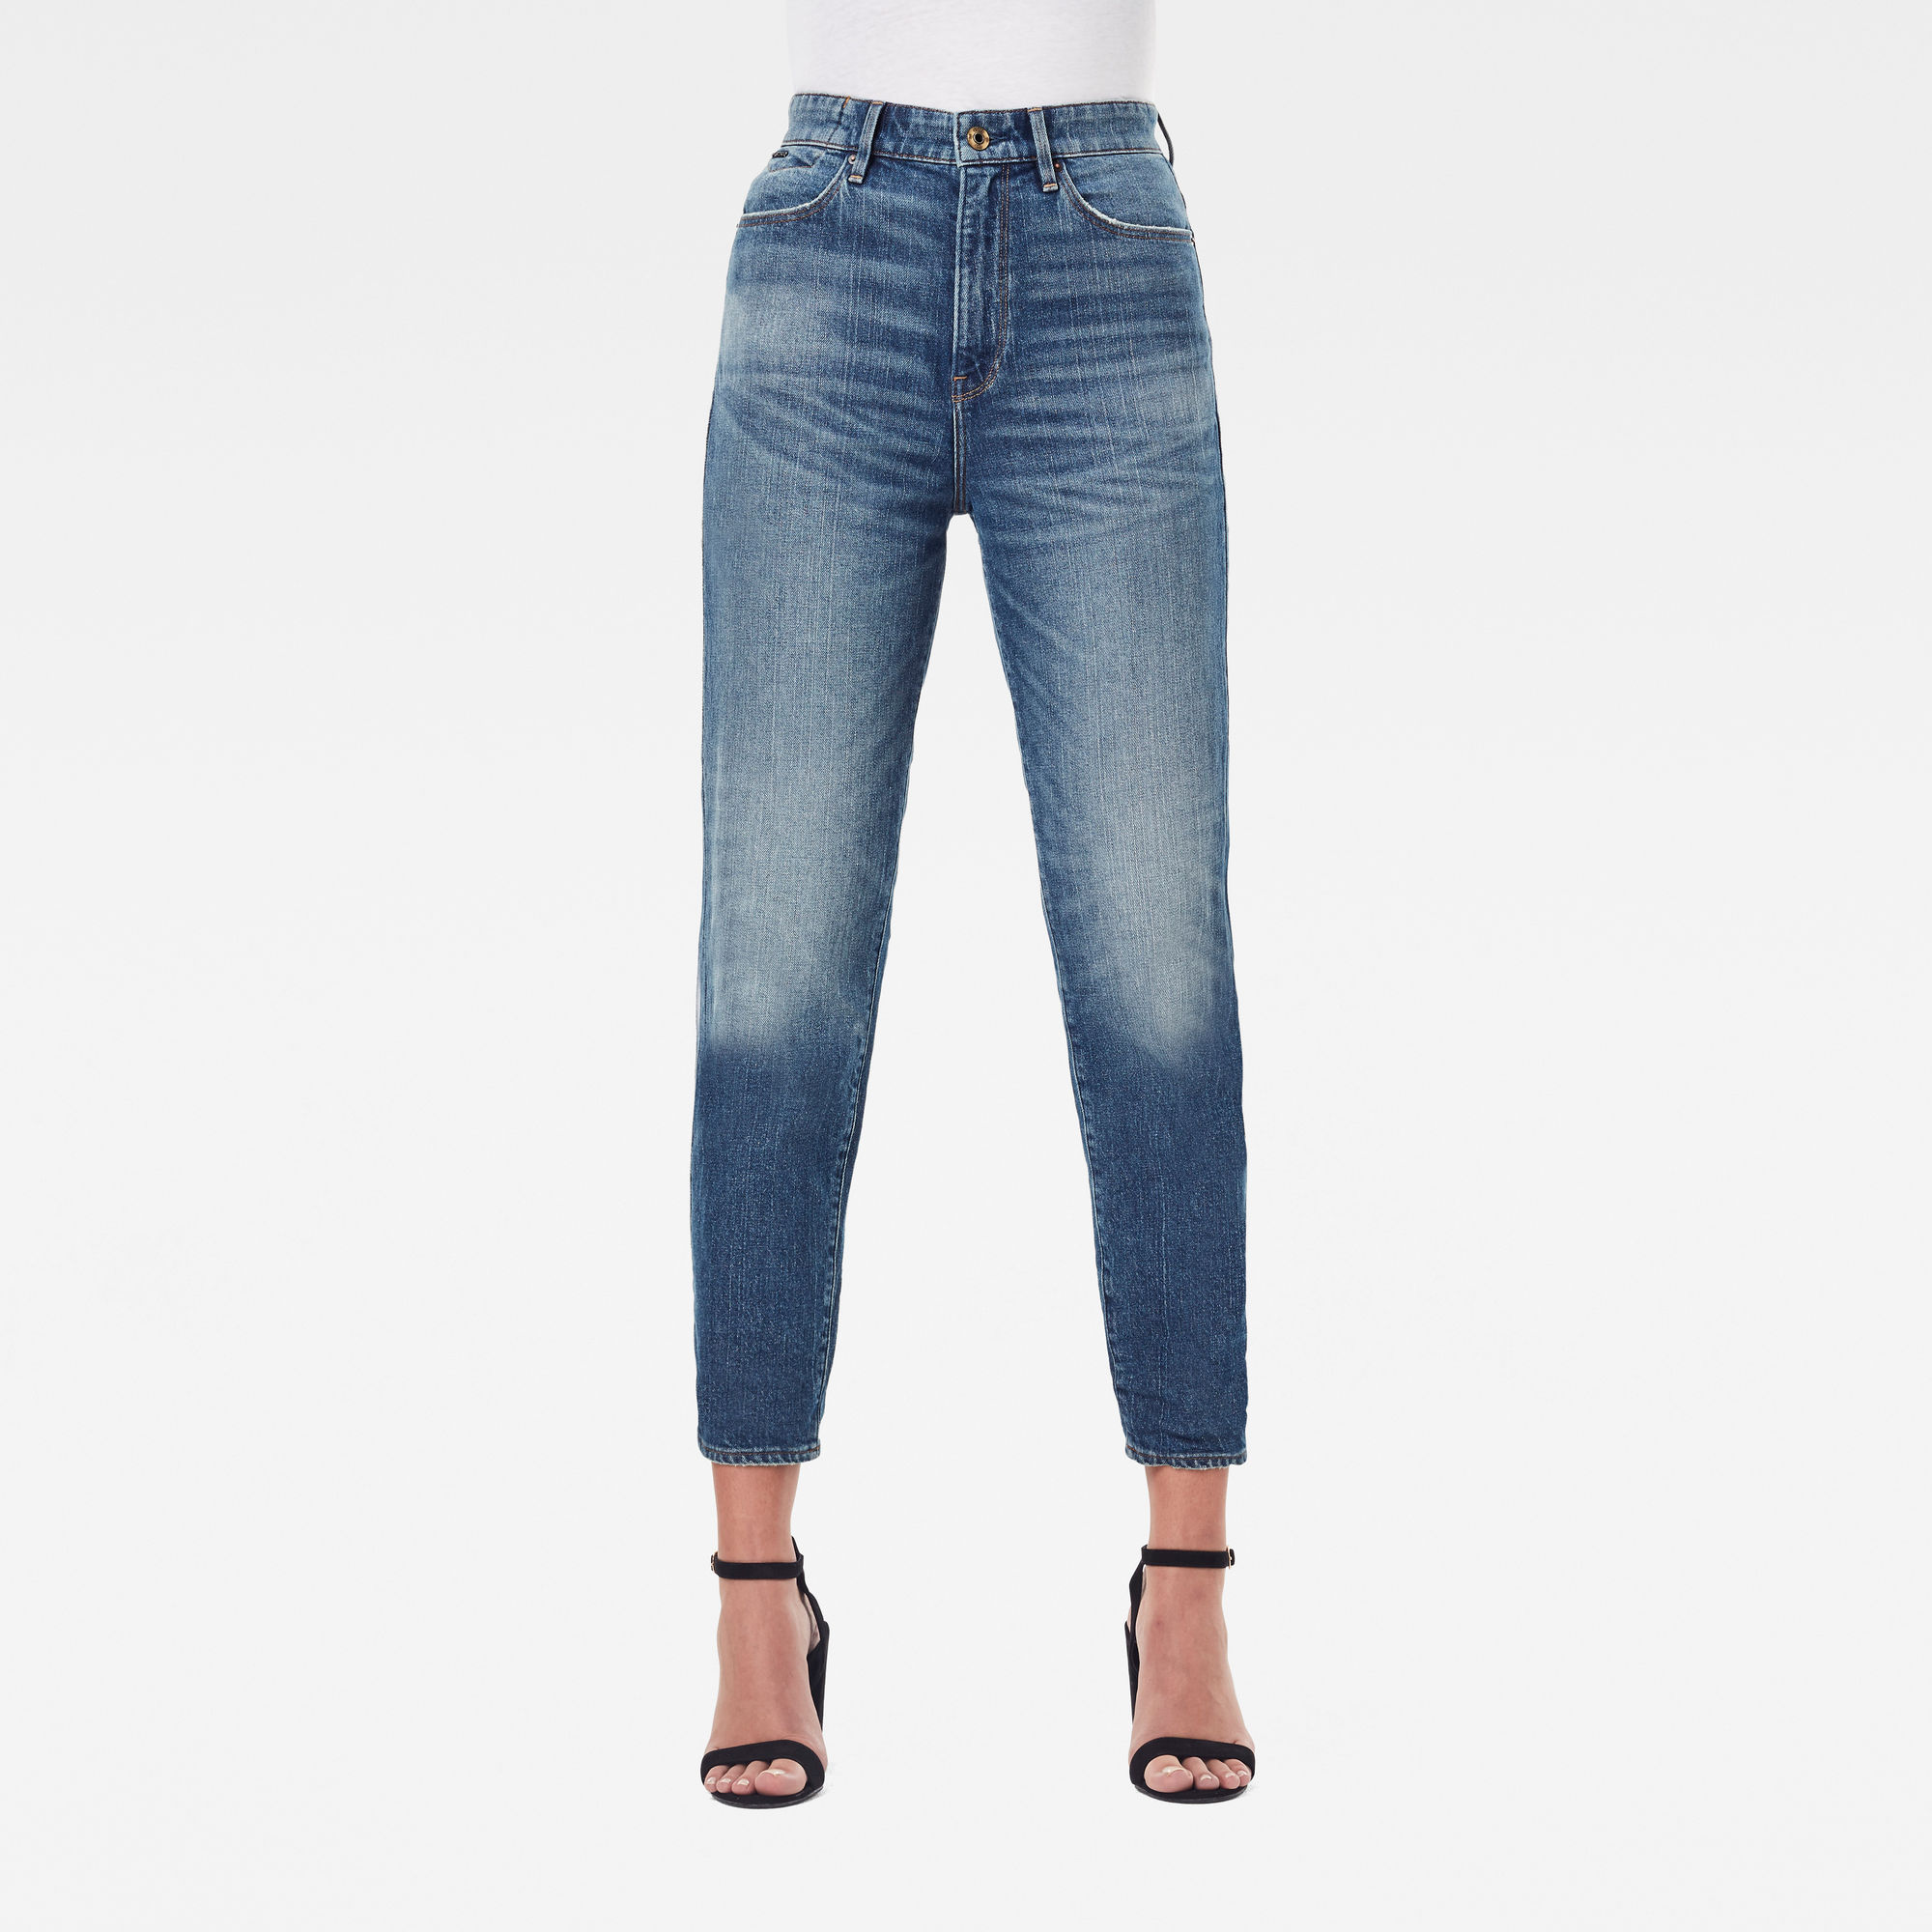 G-Star RAW Dames Janeh Ultra High Mom Ankle Jeans Blauw